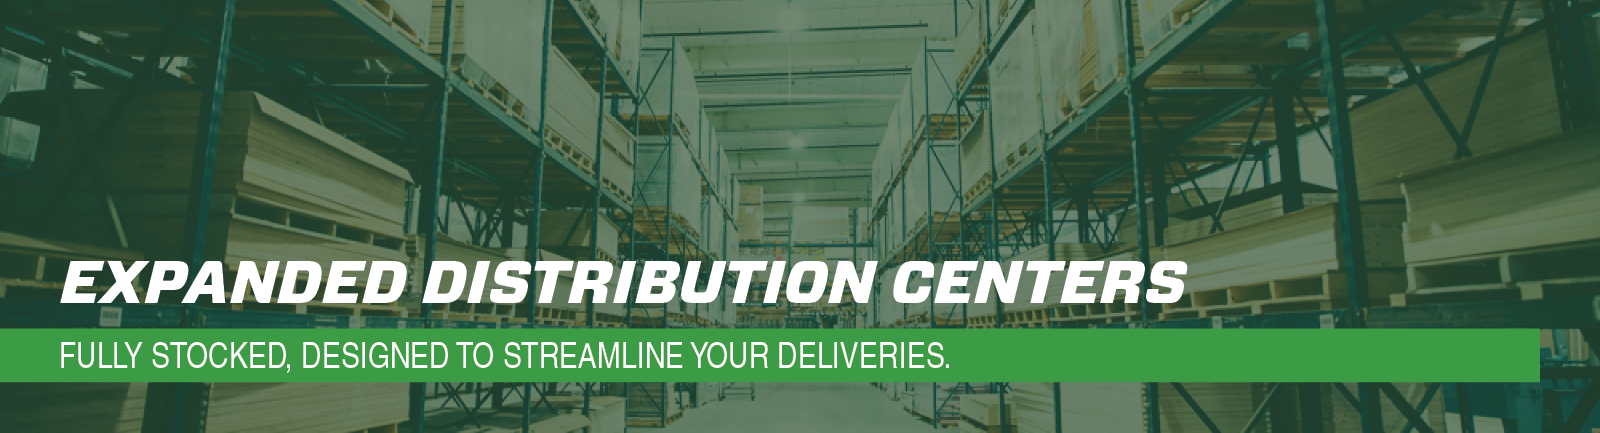 Expanded Distribution Centers